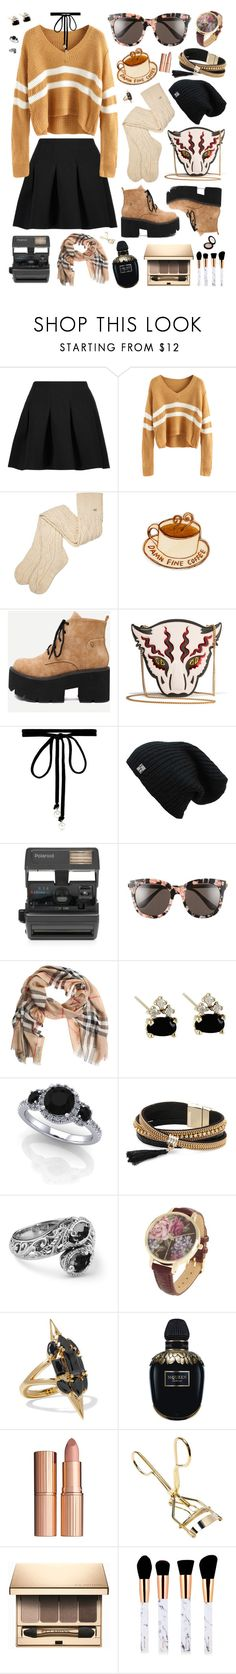 """Fresh outa film school"" by alexis-marie-burroughs ❤ liked on Polyvore featuring T By Alexander Wang, UGG, STELLA McCARTNEY, Joomi Lim, Impossible, Gentle Monster, Burberry, Simons, Carolyn Pollack/Relios and Noir Jewelry"